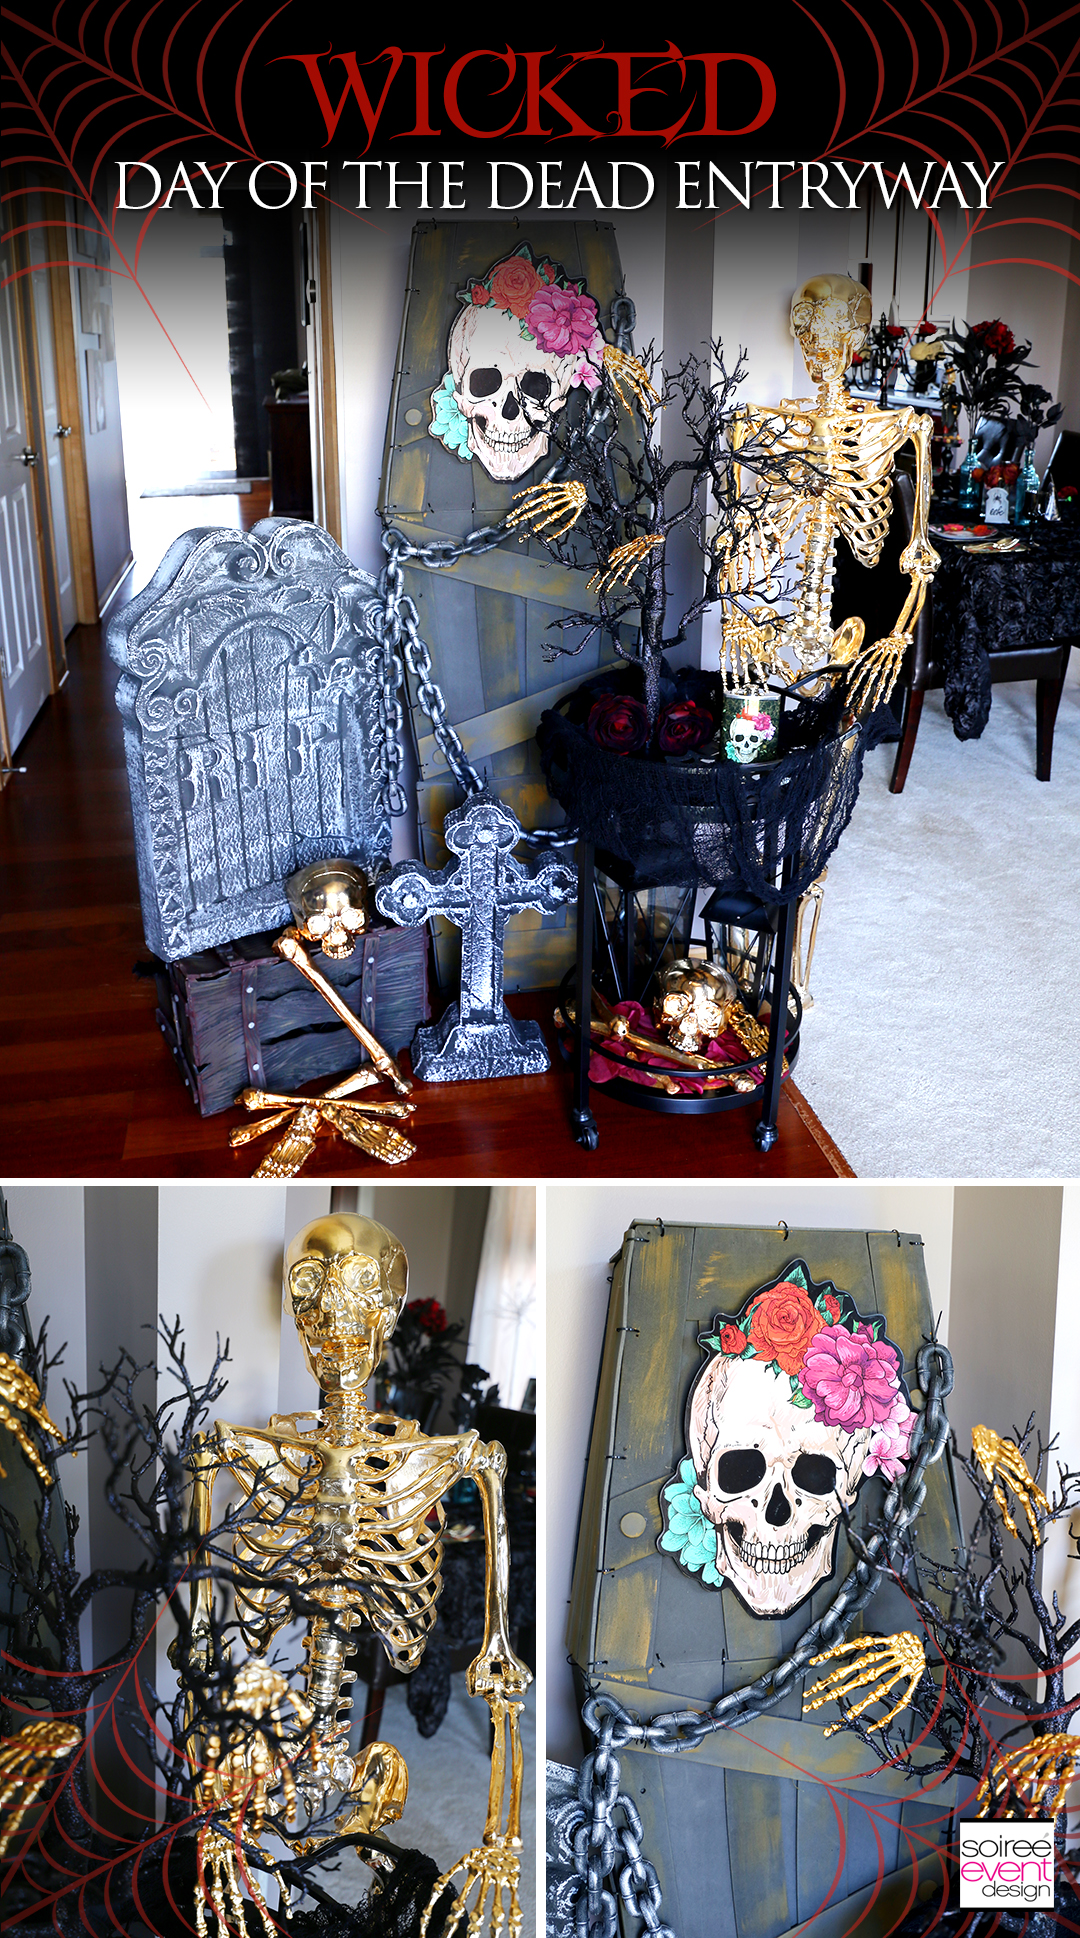 Day of the Dead Entryway - Soiree Event Design